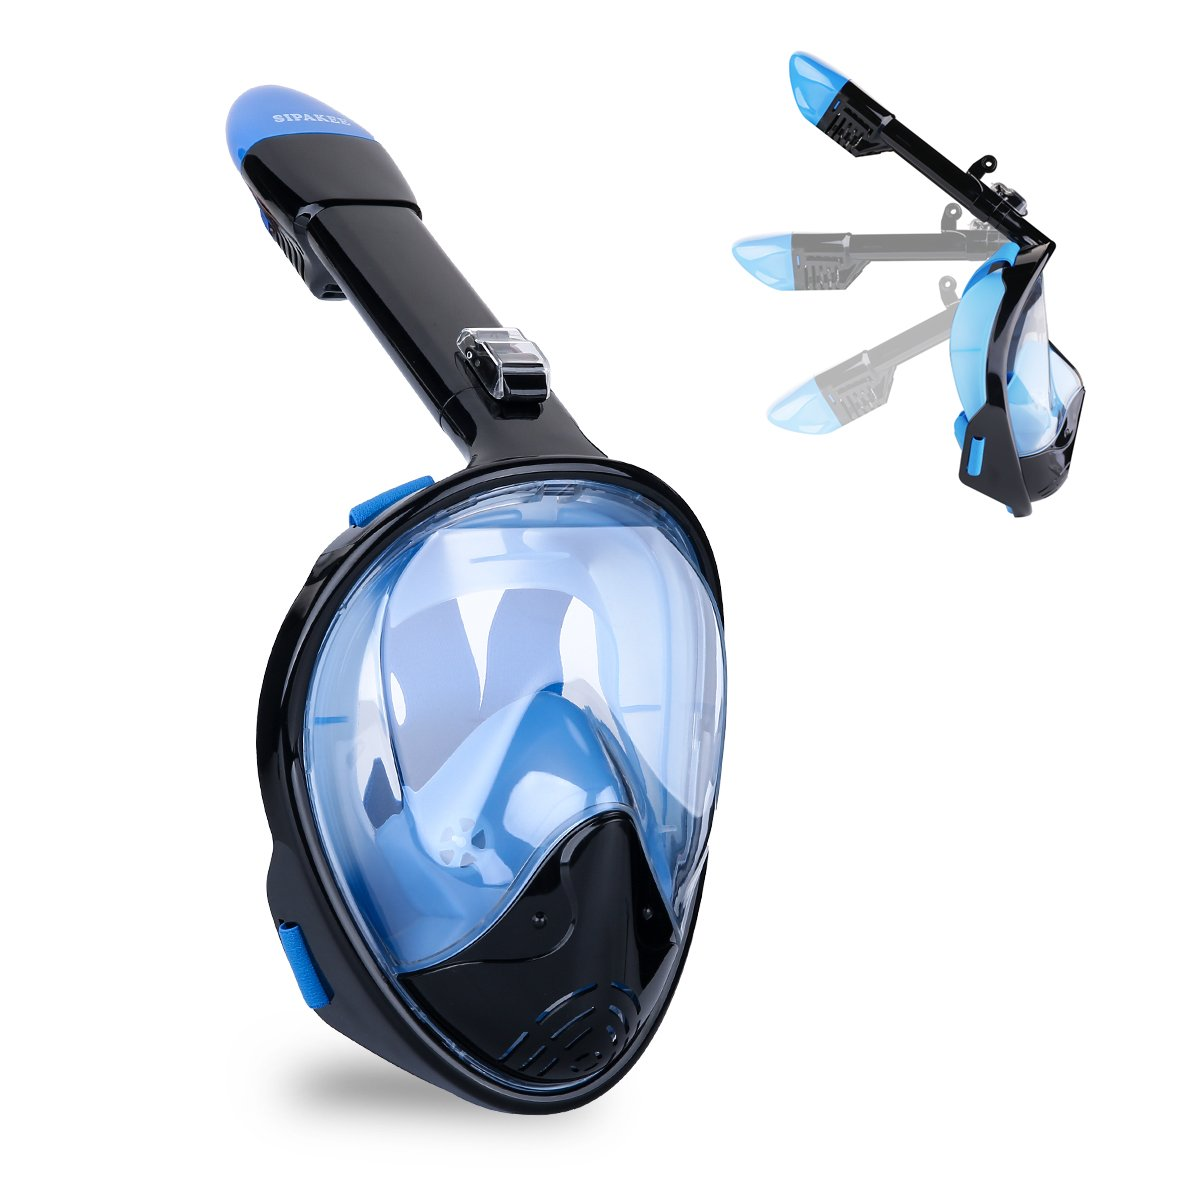 SIPAKEE Snorkel Mask 180° Panoramic Anti-Leak Anti-Fog Snorkeling mask Set with Suitable for adults and children